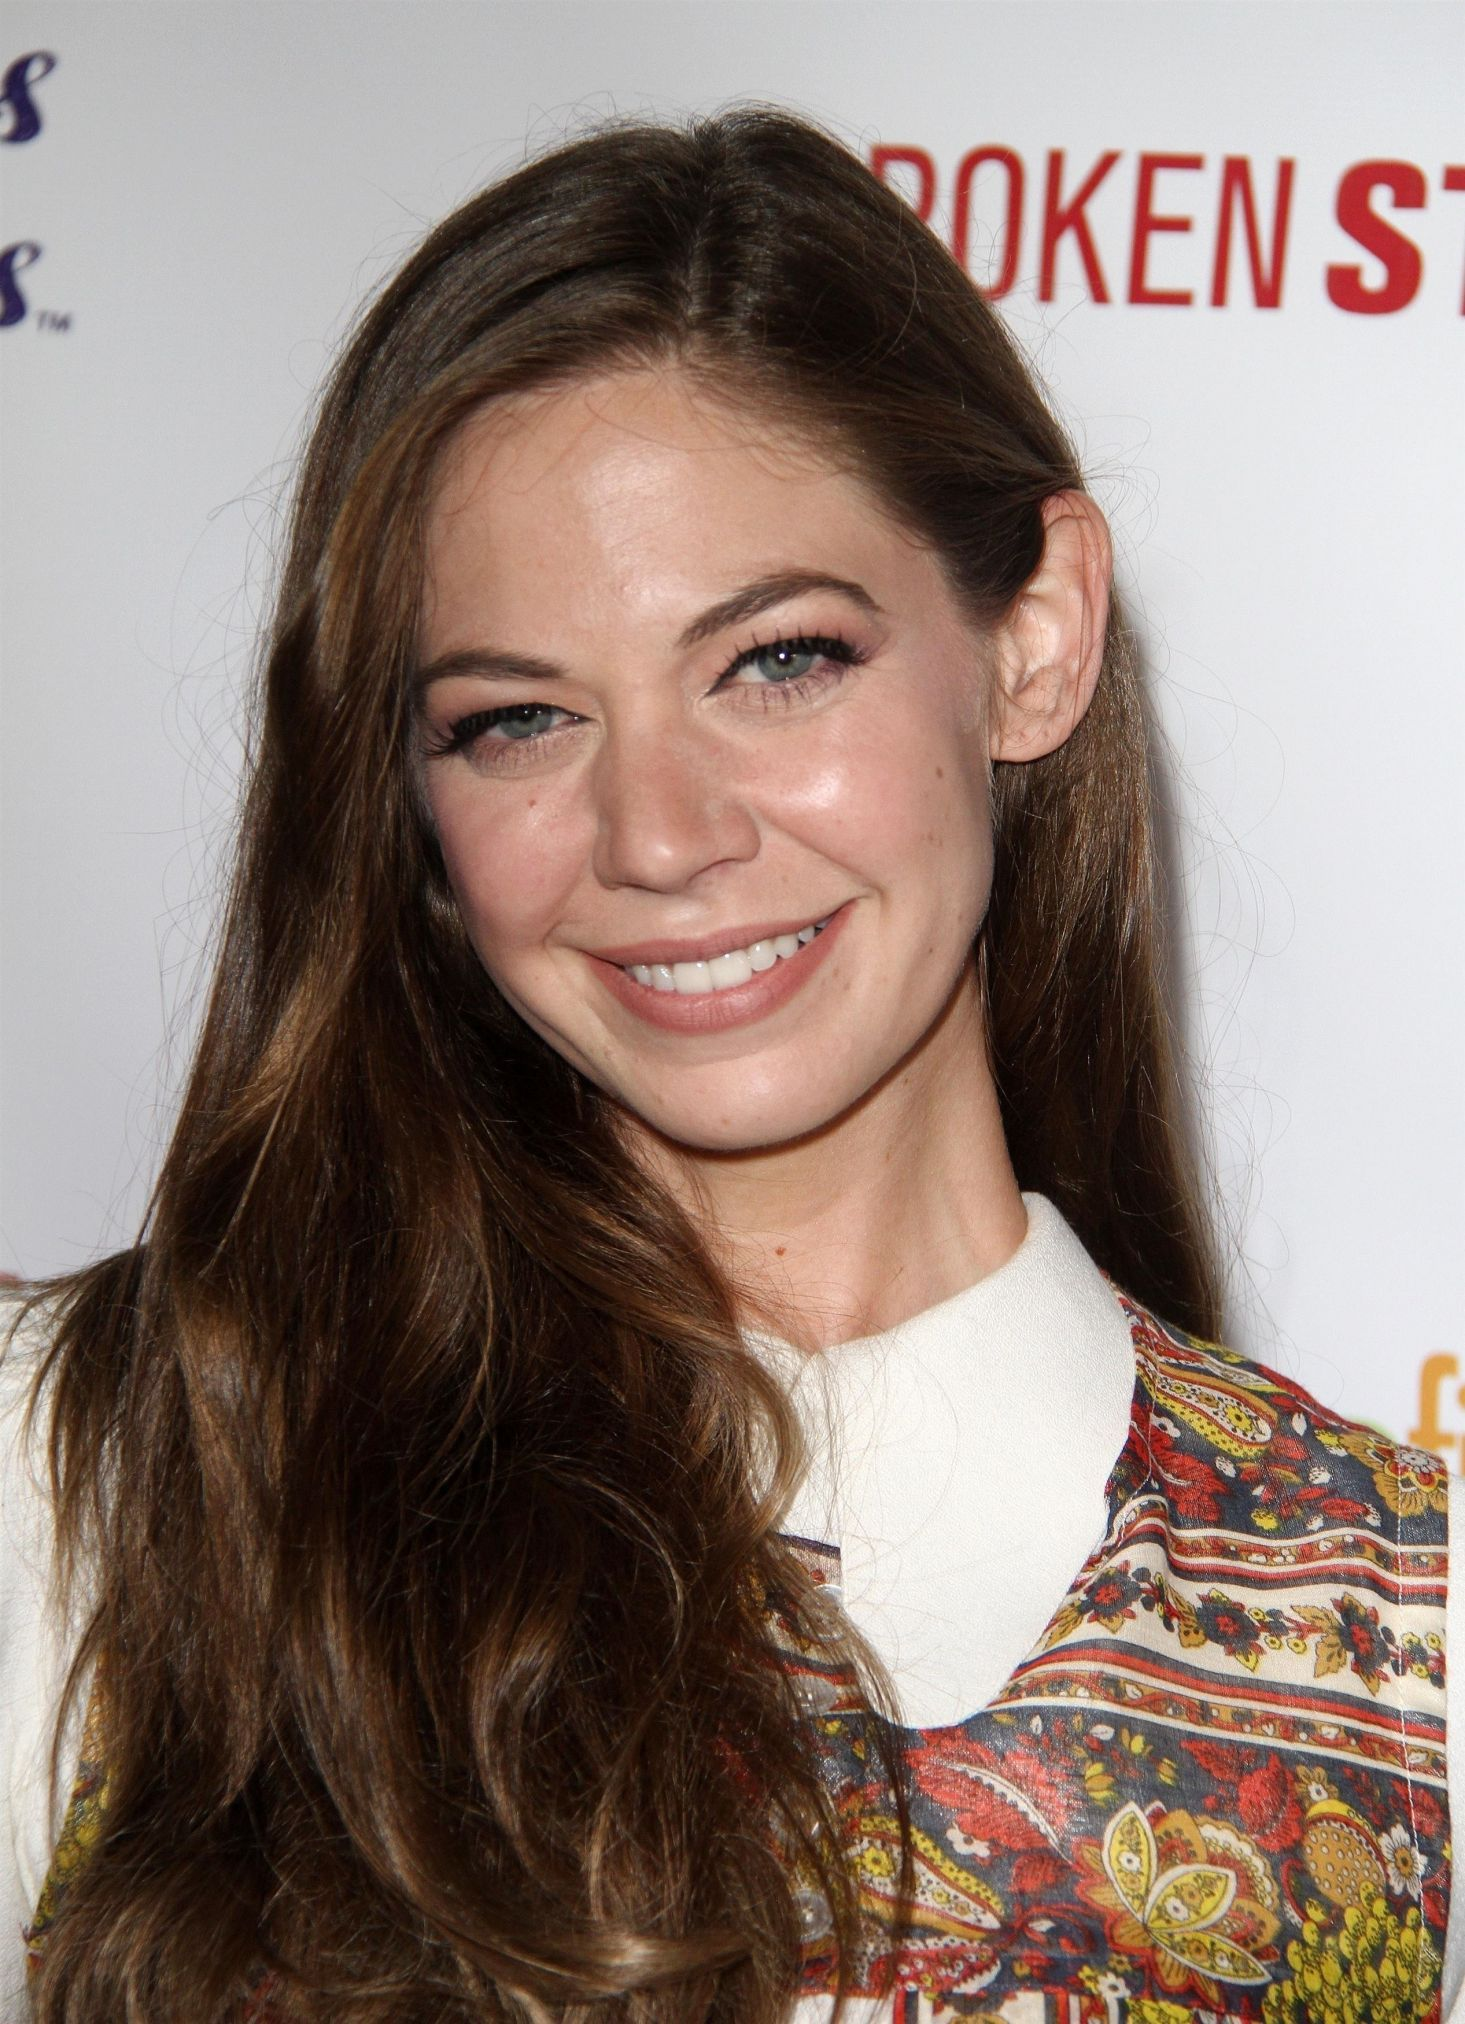 Topless Celebrity Analeigh Tipton naked photo 2017